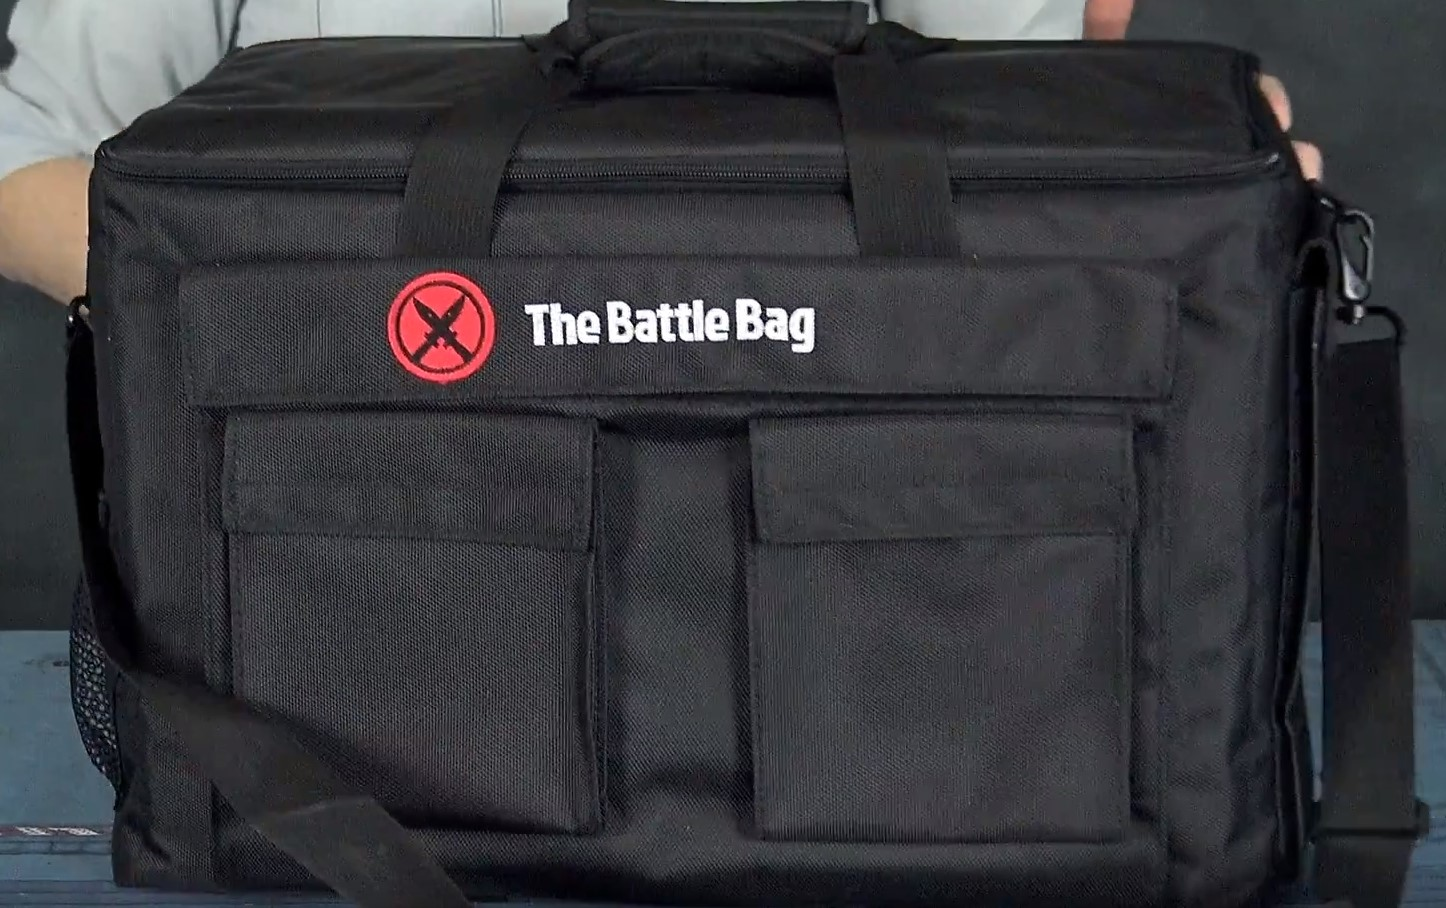 Battlefoam Bags / Includes a molle system, which allows you to further customize this bag to fit your specific storage and transportation needs.